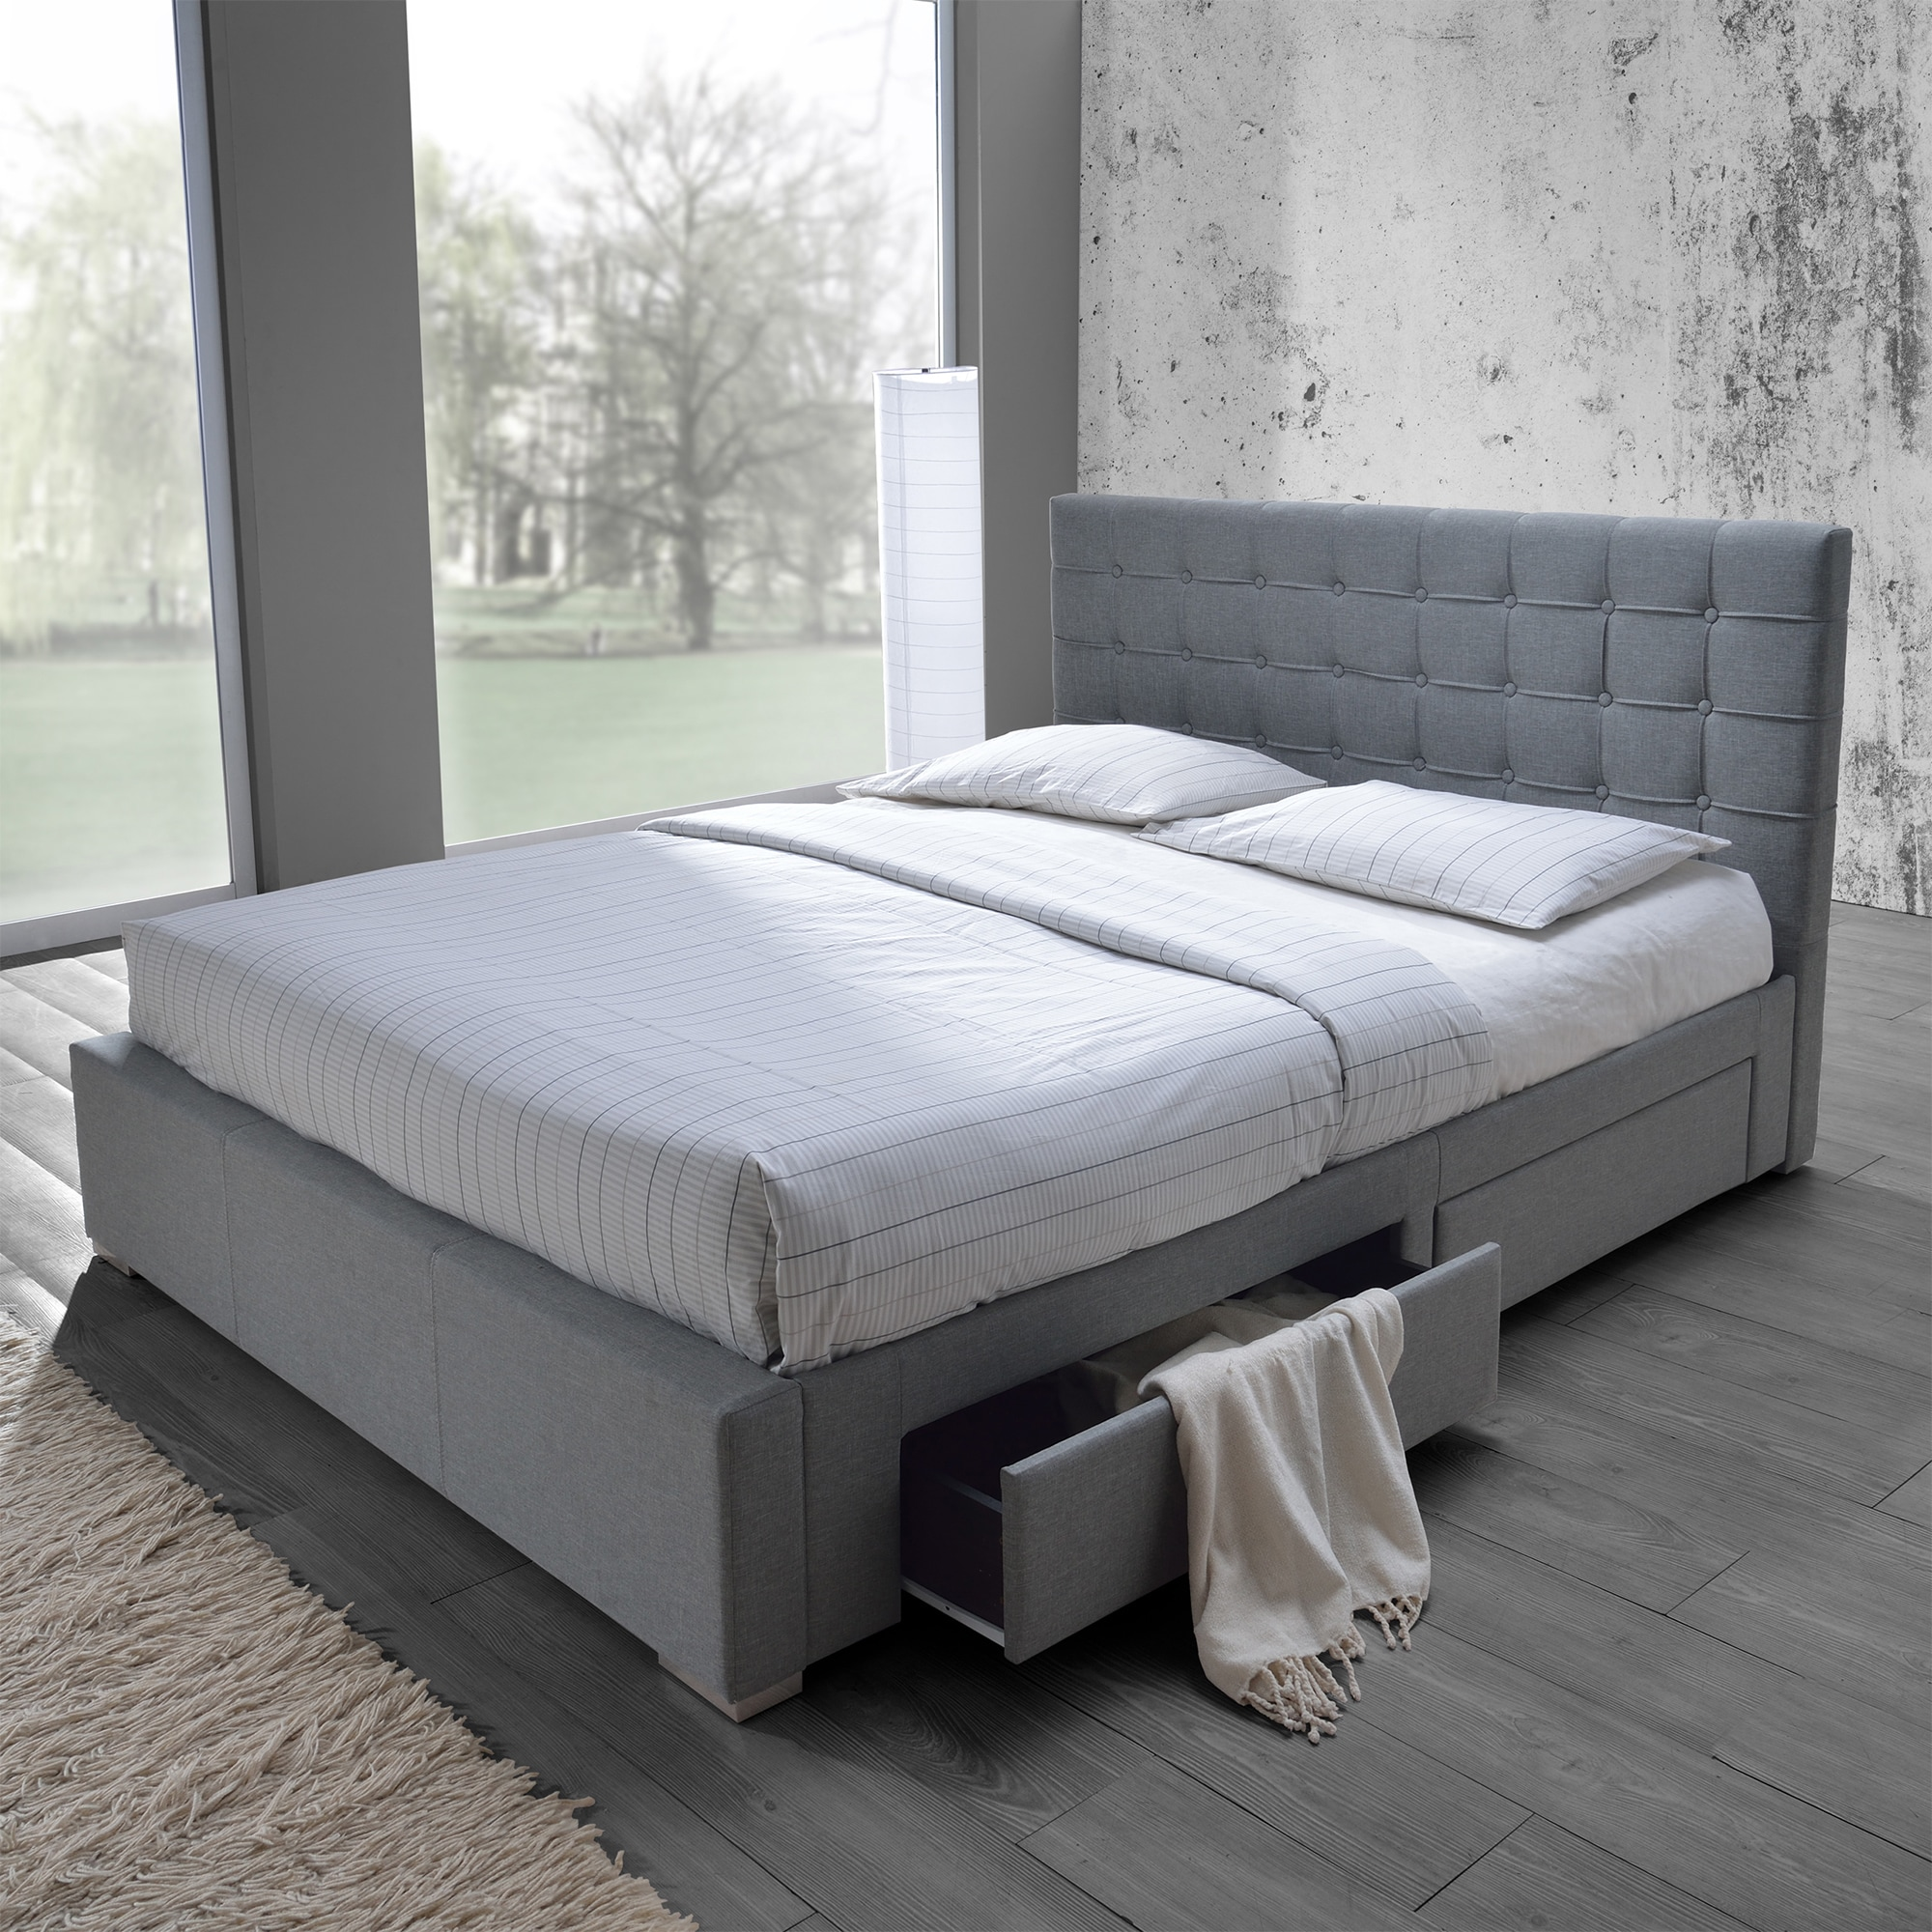 Contemporary Modern Beds: Shop Baxton Studio Adonis Modern And Contemporary Grey